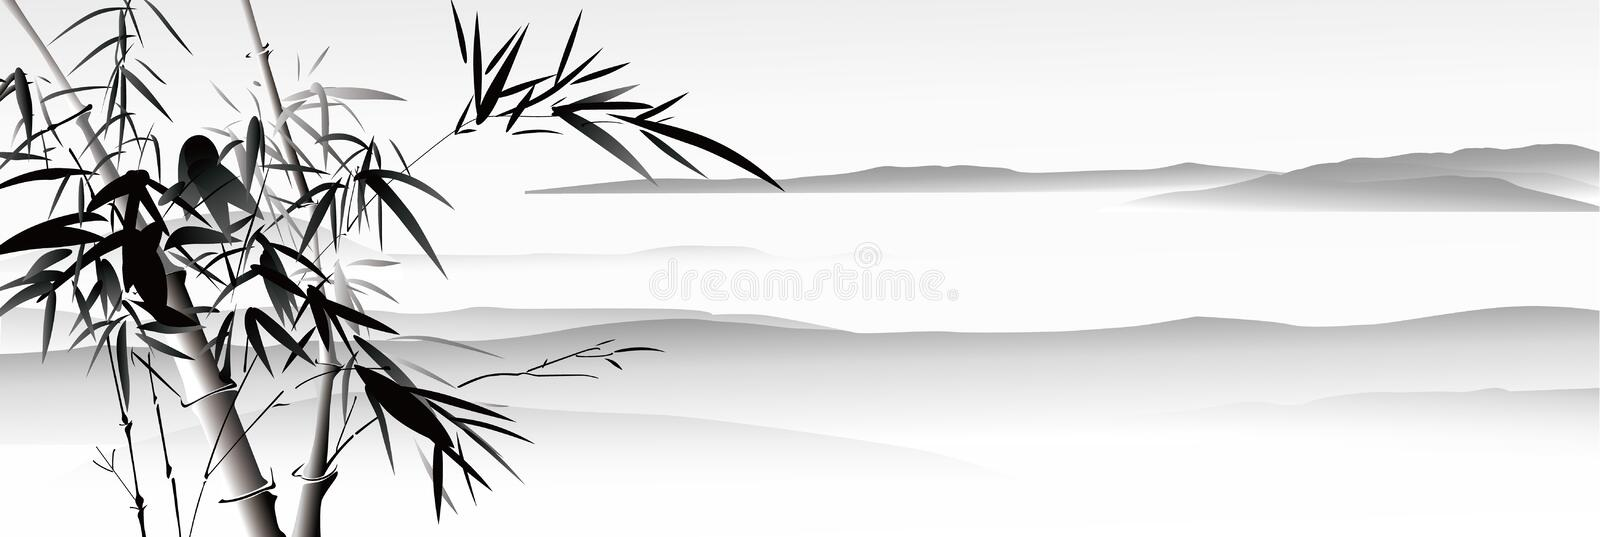 Landscape painting. Chinese ink style vector illustration